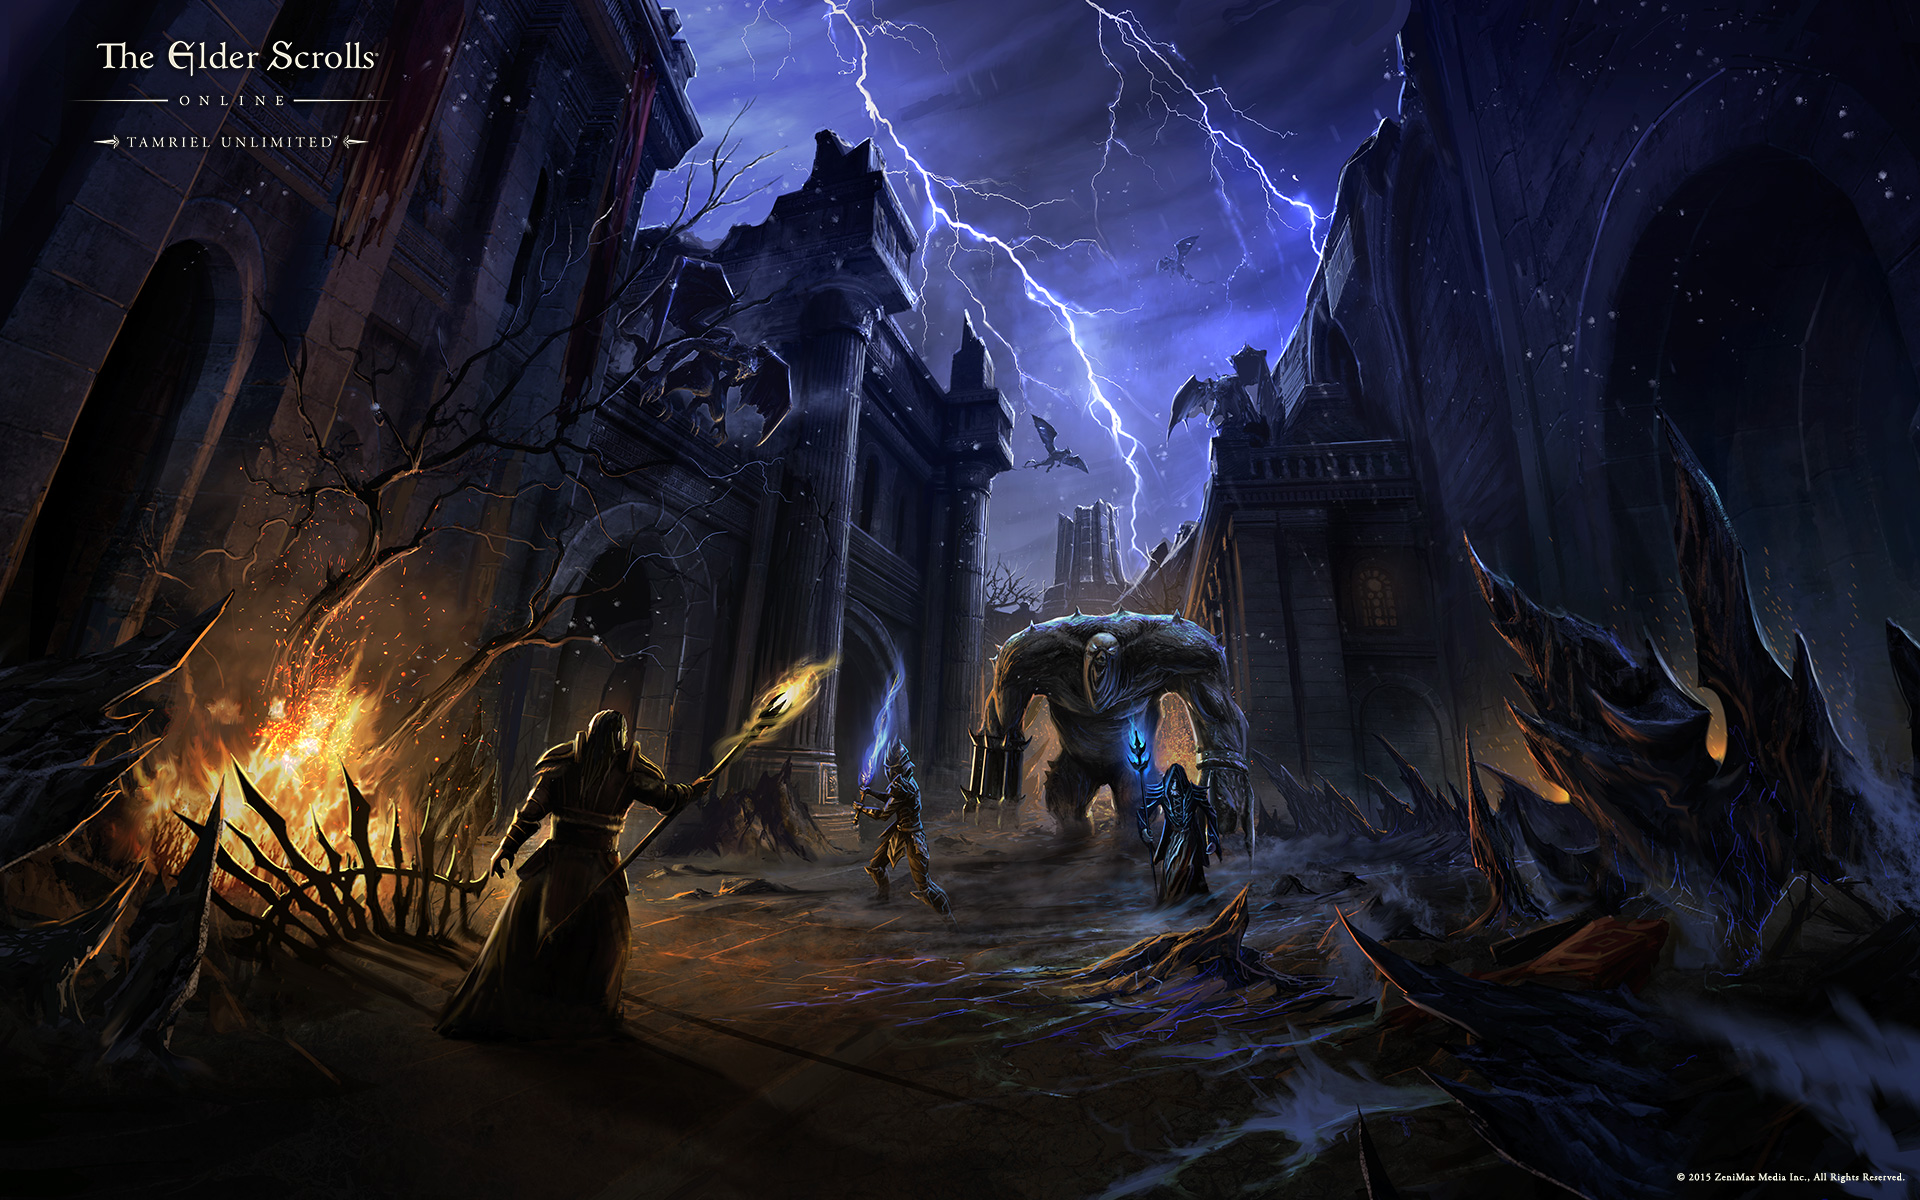 The Elder Scrolls Online Wallpaper The Elder Scrolls Fan Site